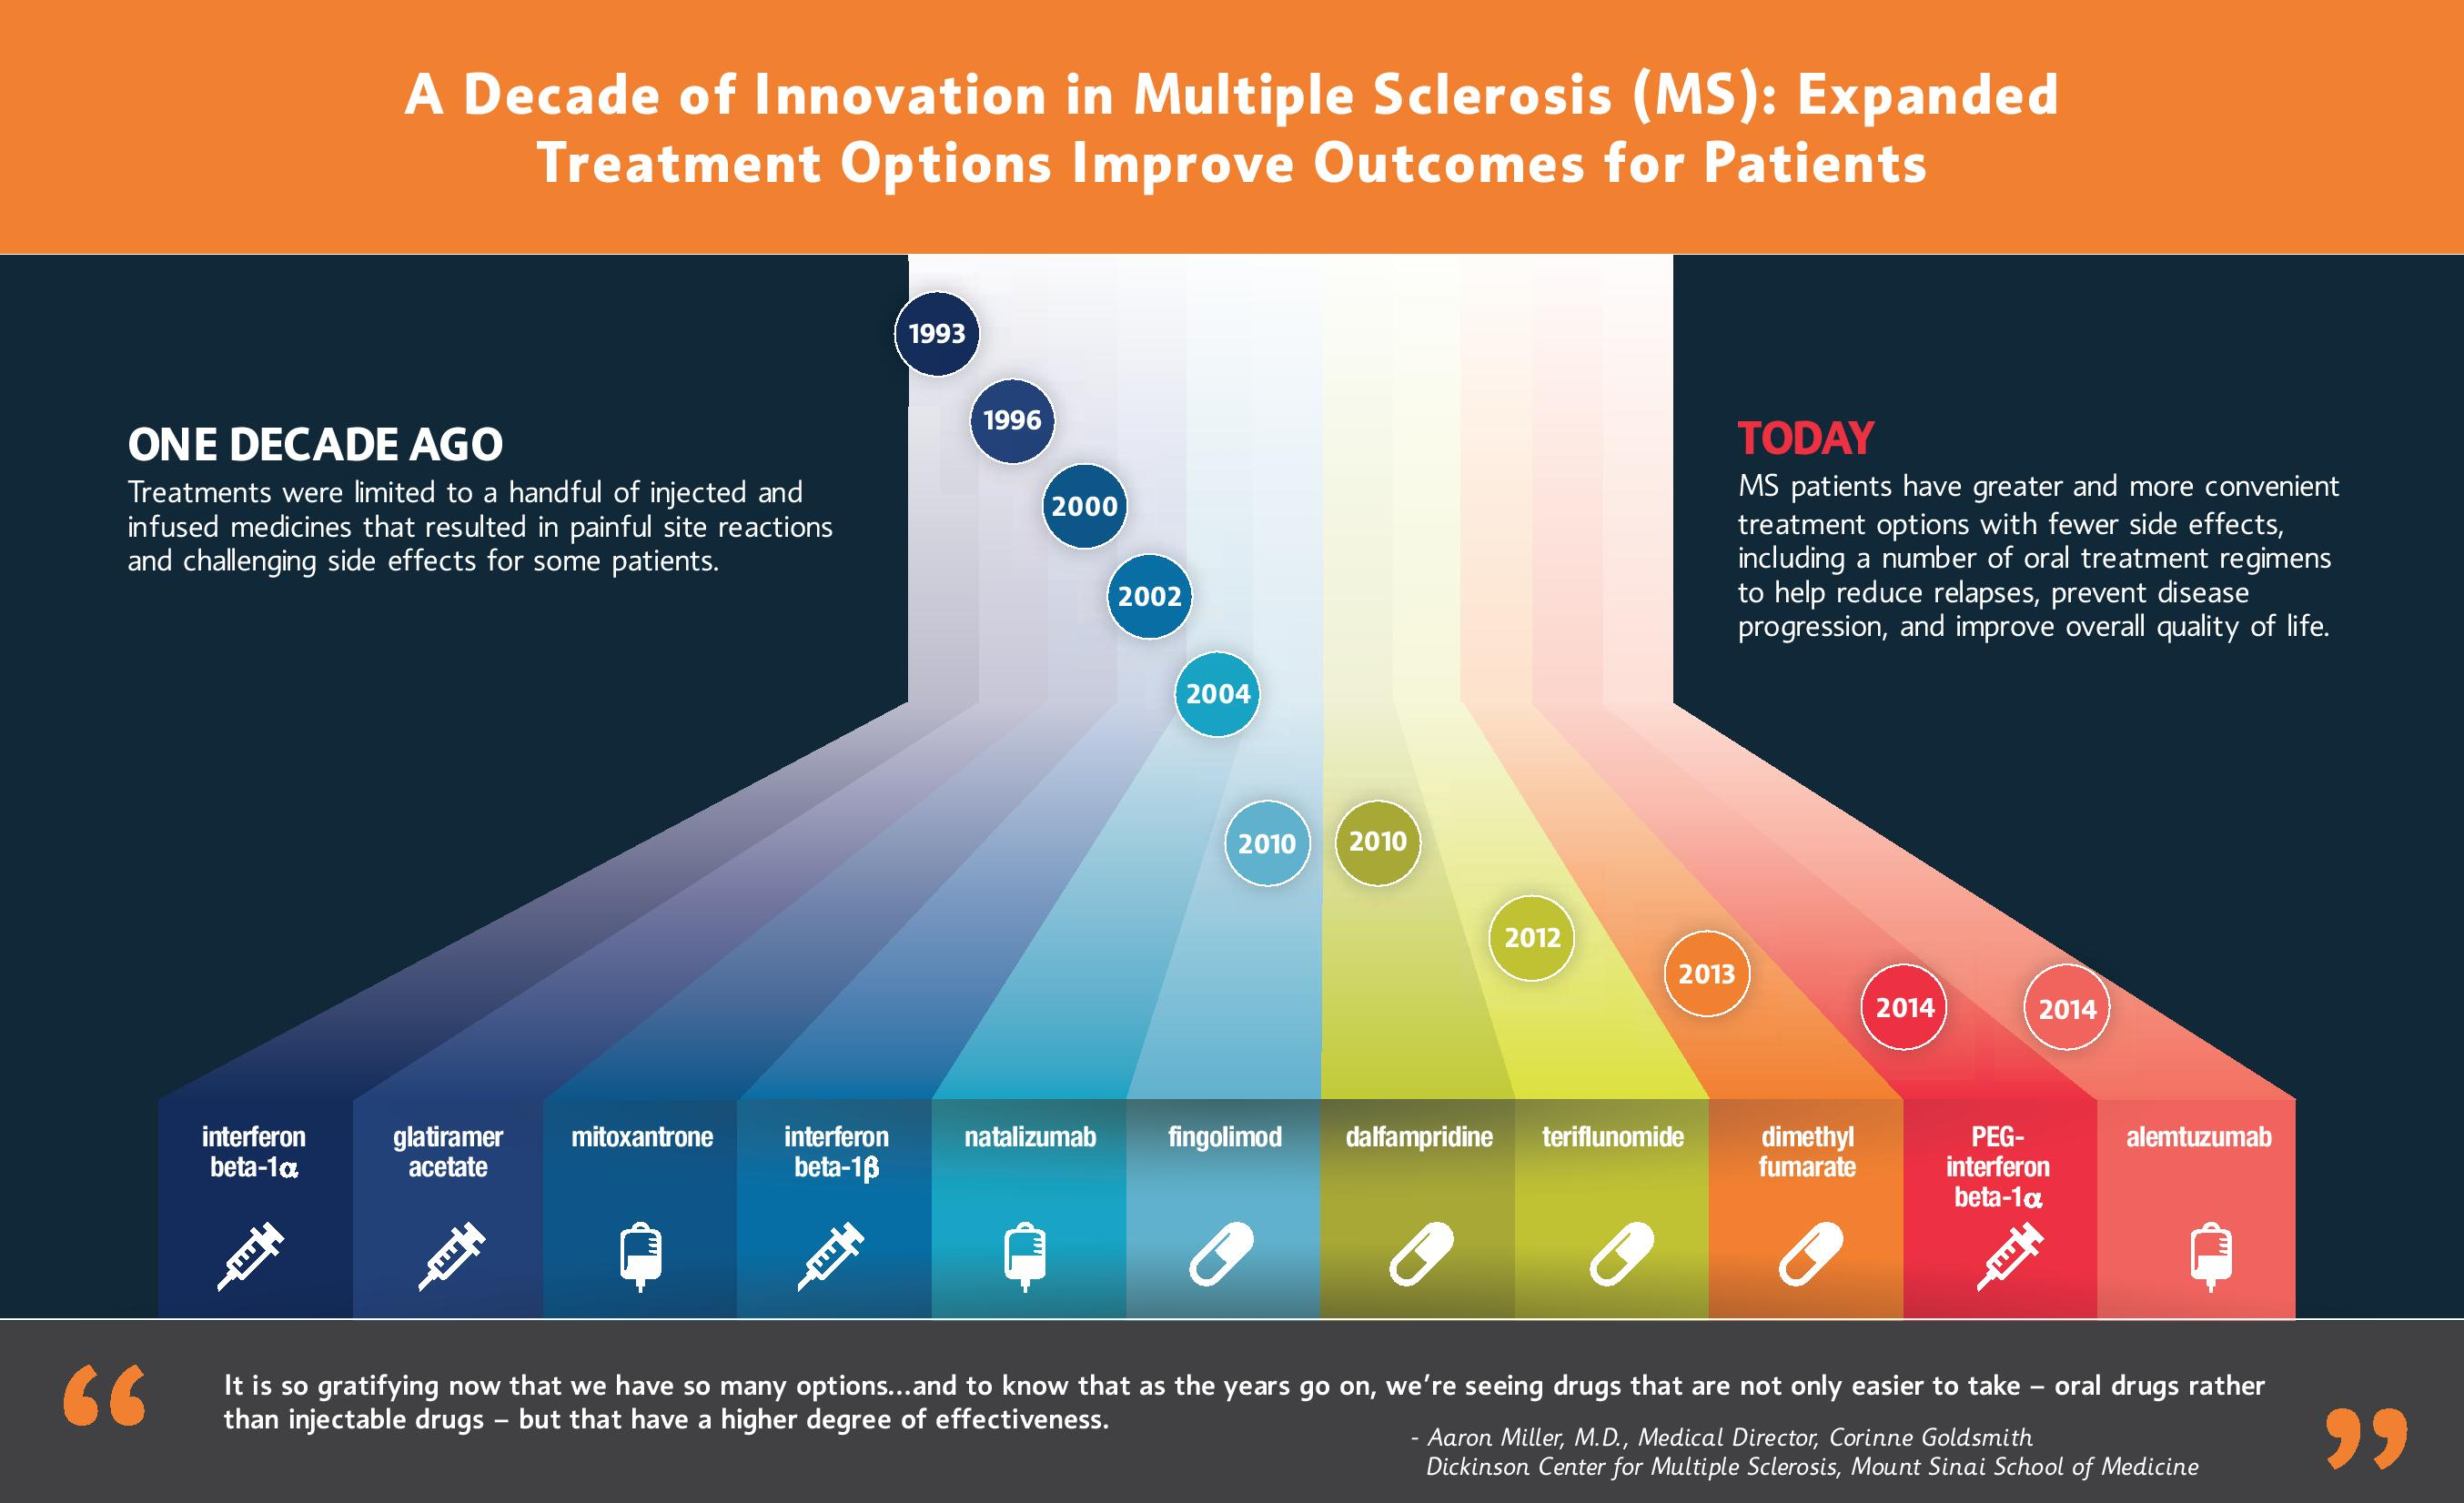 DecadeofInnovation_MSInfographic_22416_FINAL-page-001